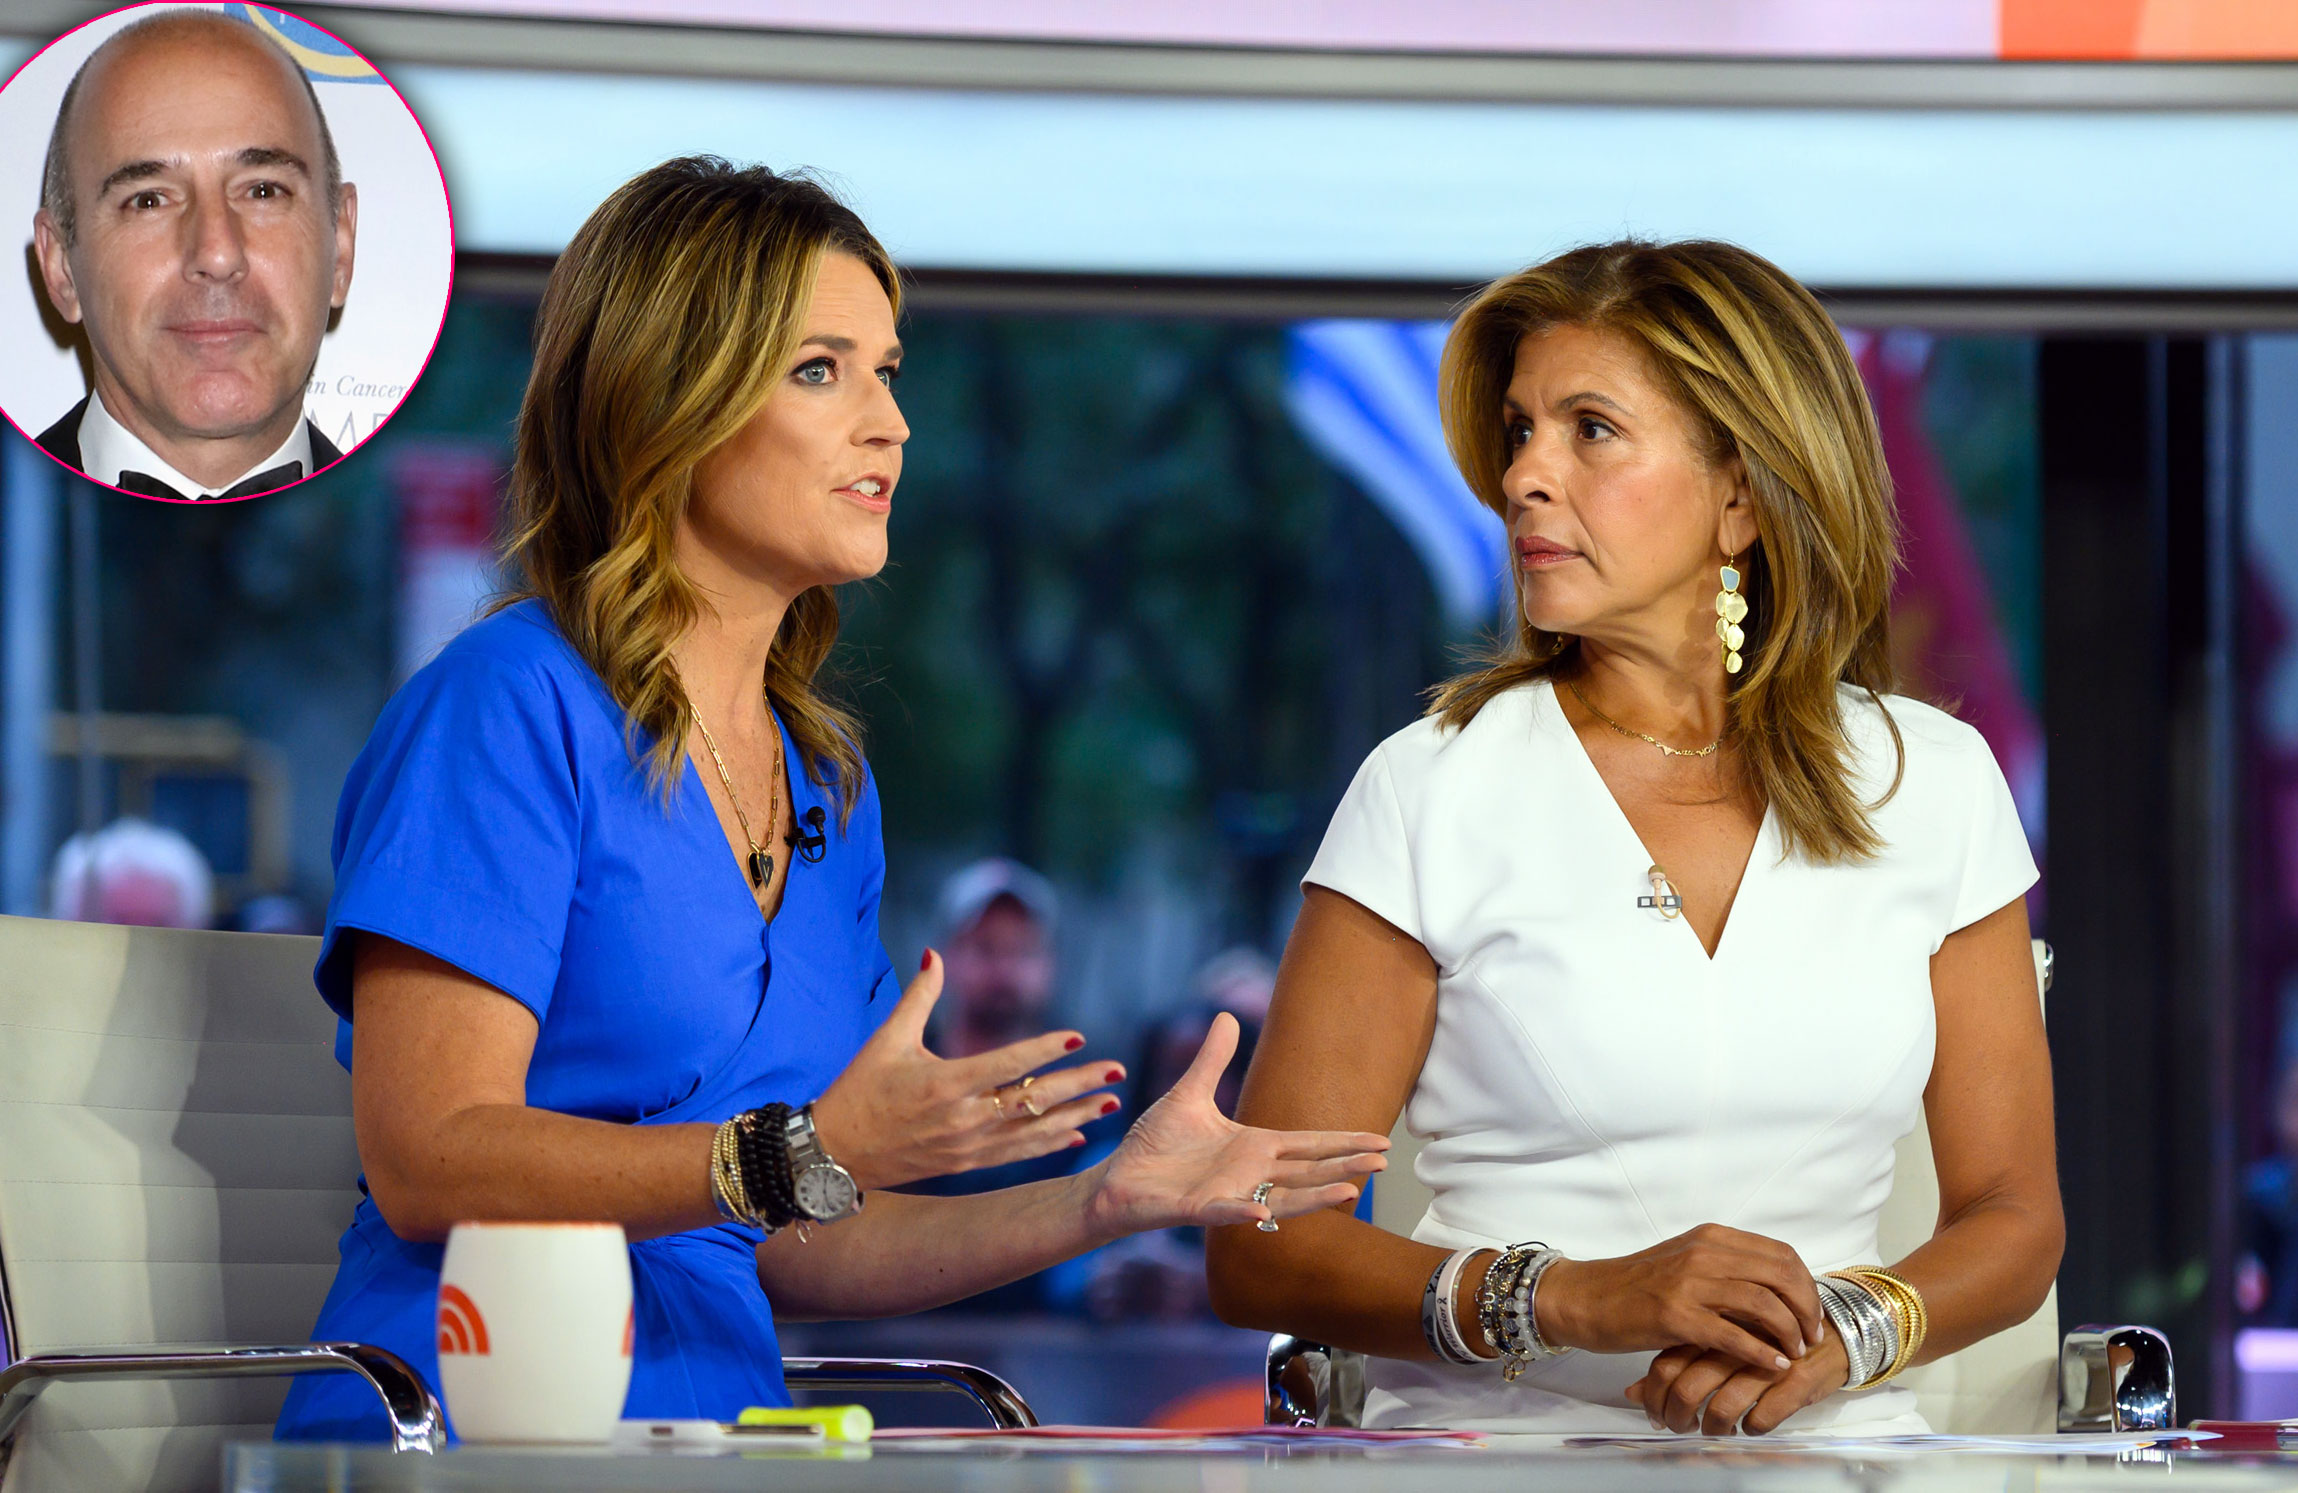 Savannah Guthrie and Hoda Kotb Are 'Disturbed' Over New Rape Allegation Against Matt Lauer